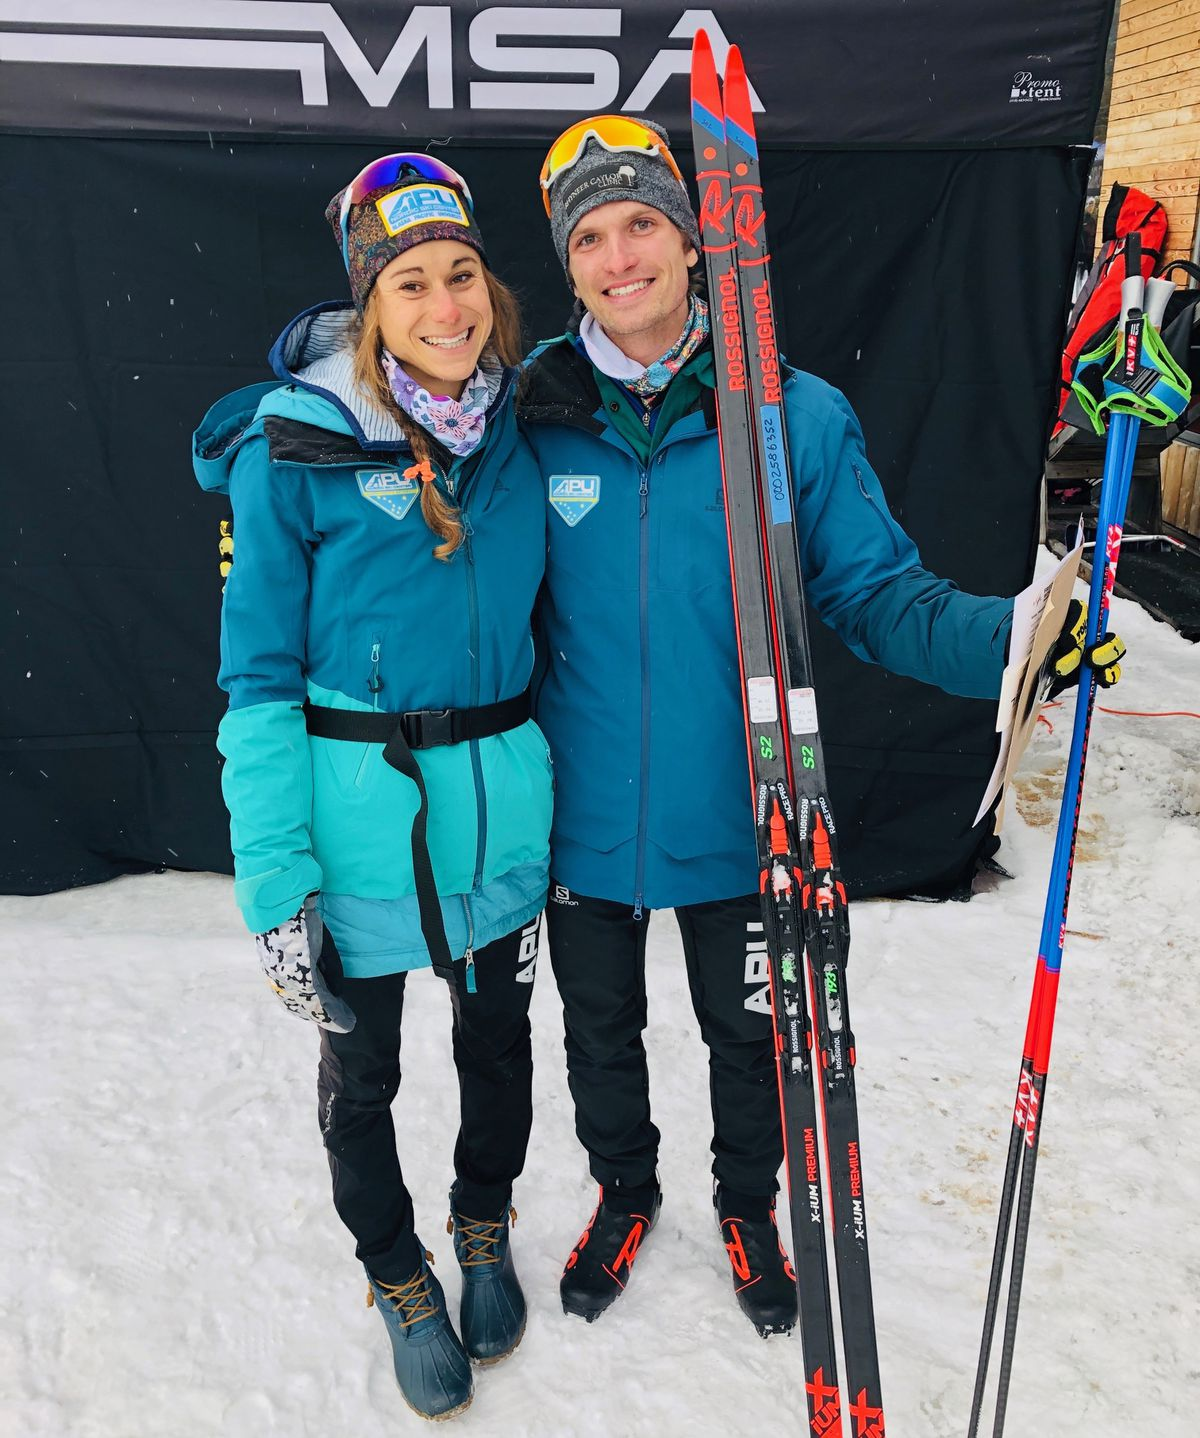 Jessica Yeaton and David Norris moments after Norris won the men's 30-kilometer freestyle race at the 2019 U.S. National Championships in Craftsbury, Vermont. Earlier the same day, Yeaton placed third in the women's 20K freestyle. (Photo courtesy Jessica Yeaton)